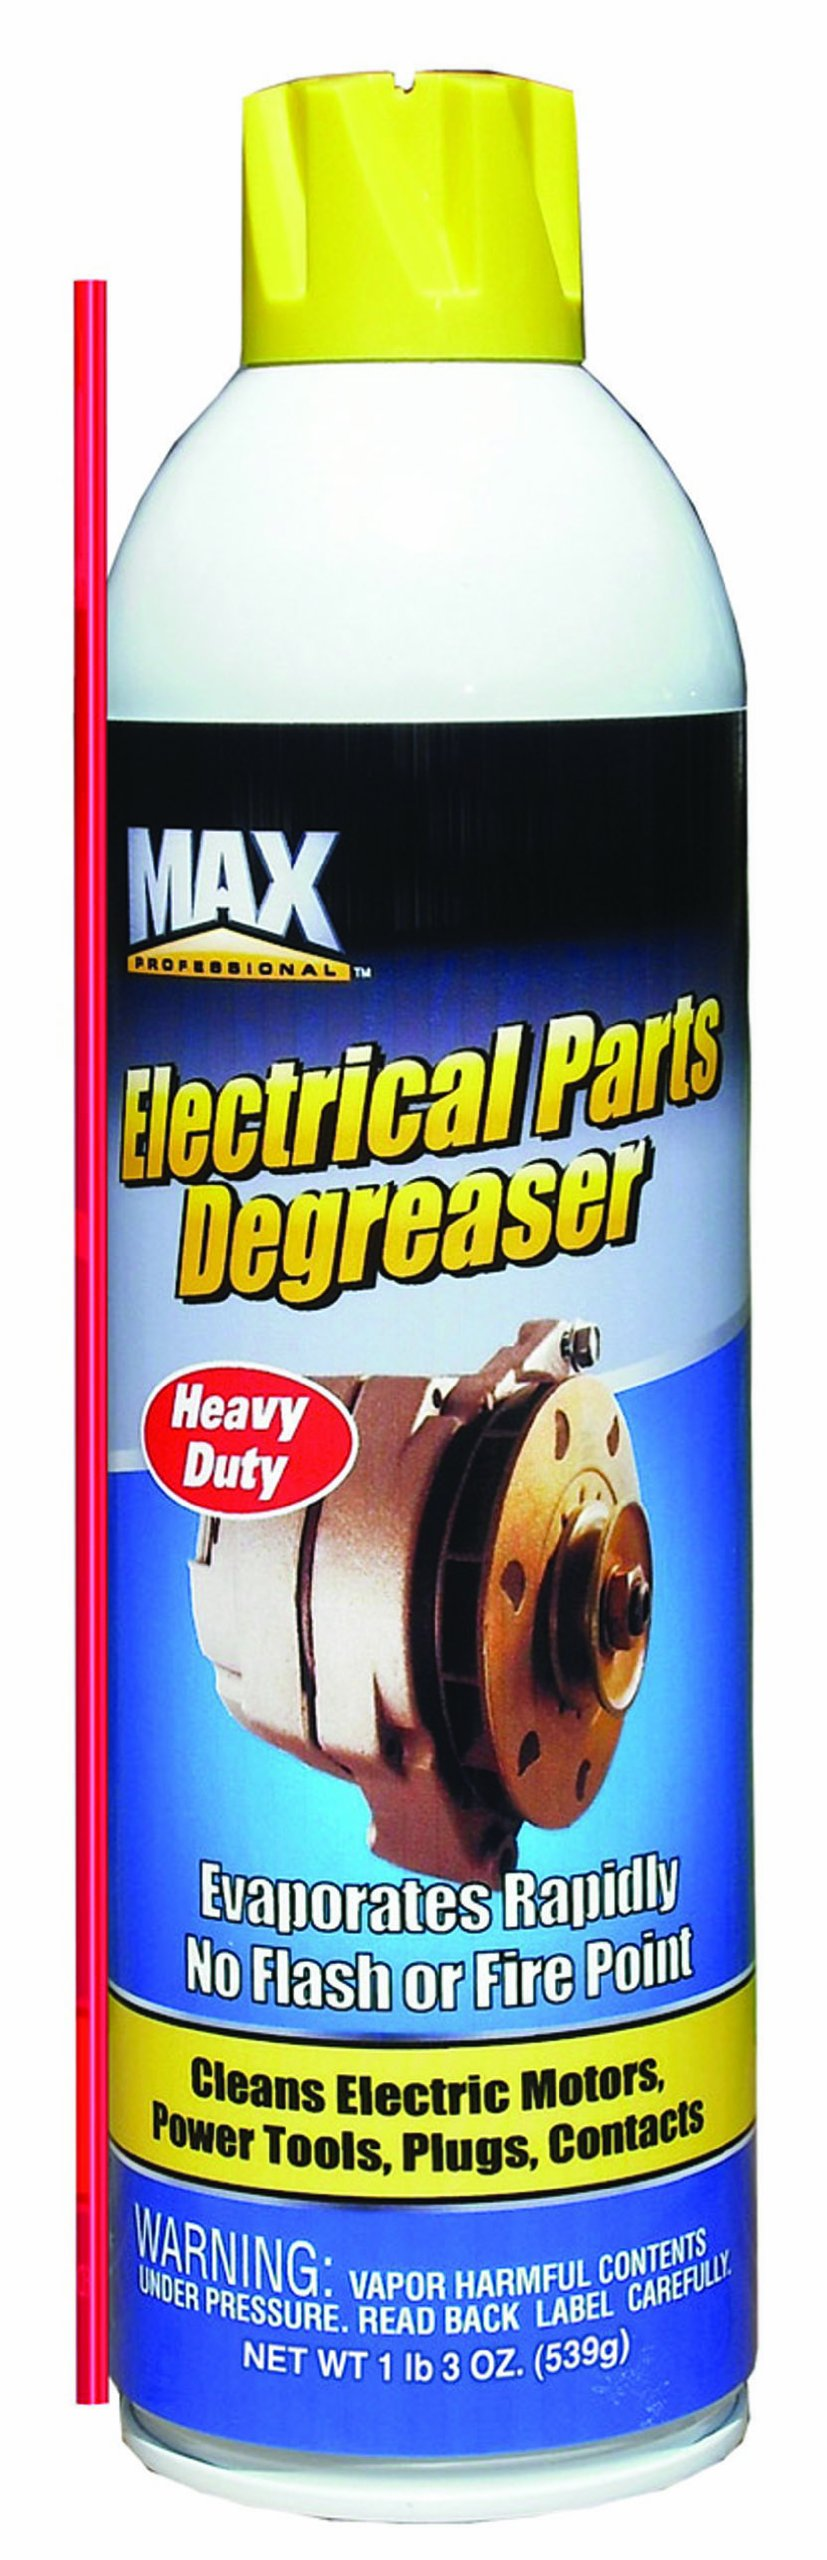 Max Professional 2121 Electrical Parts Degreaser - 19 oz.